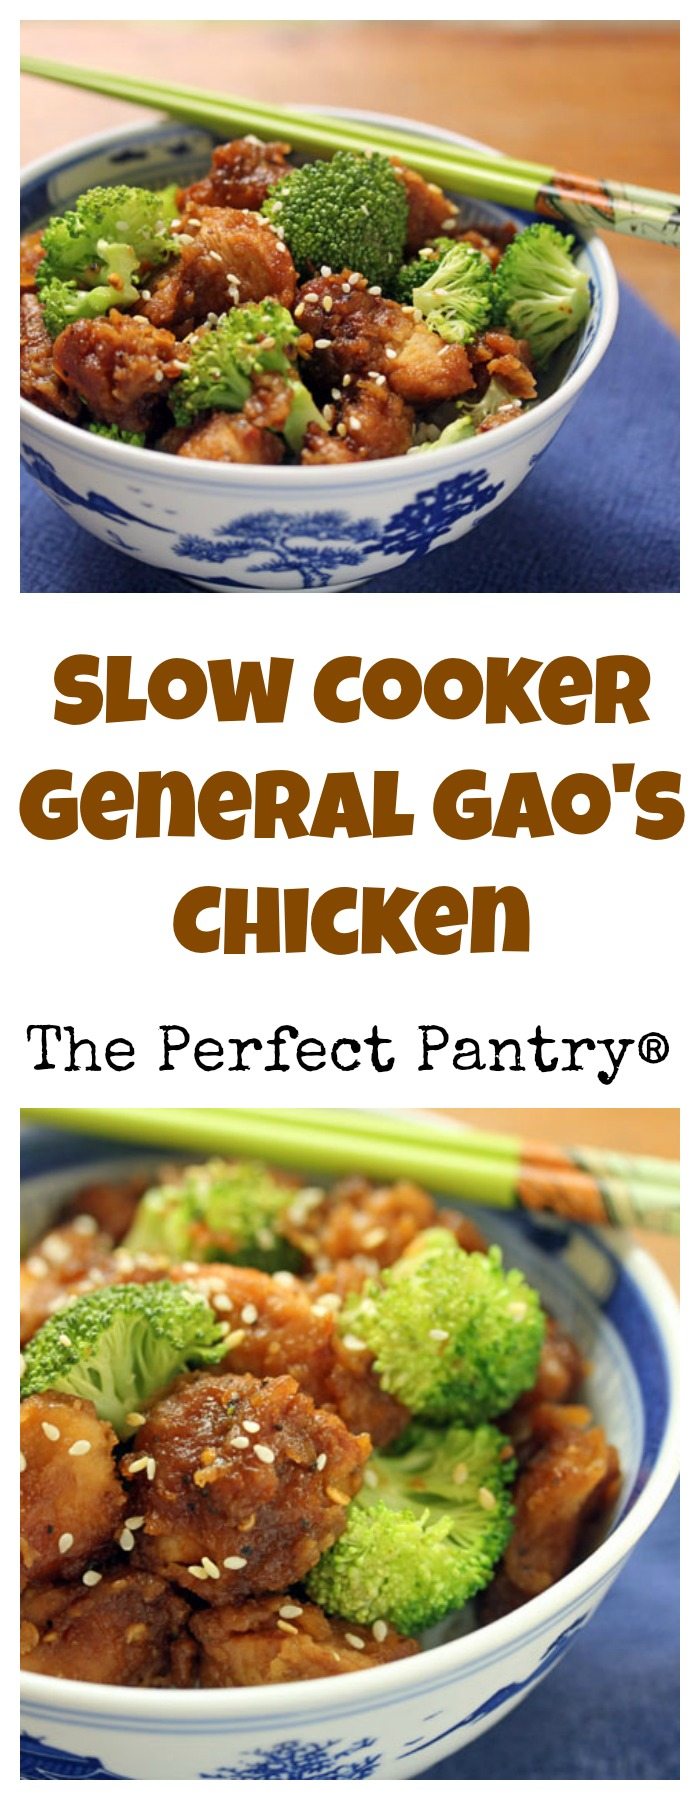 Make this restaurant favorite at home! So easy in the slow cooker. #glutenfree